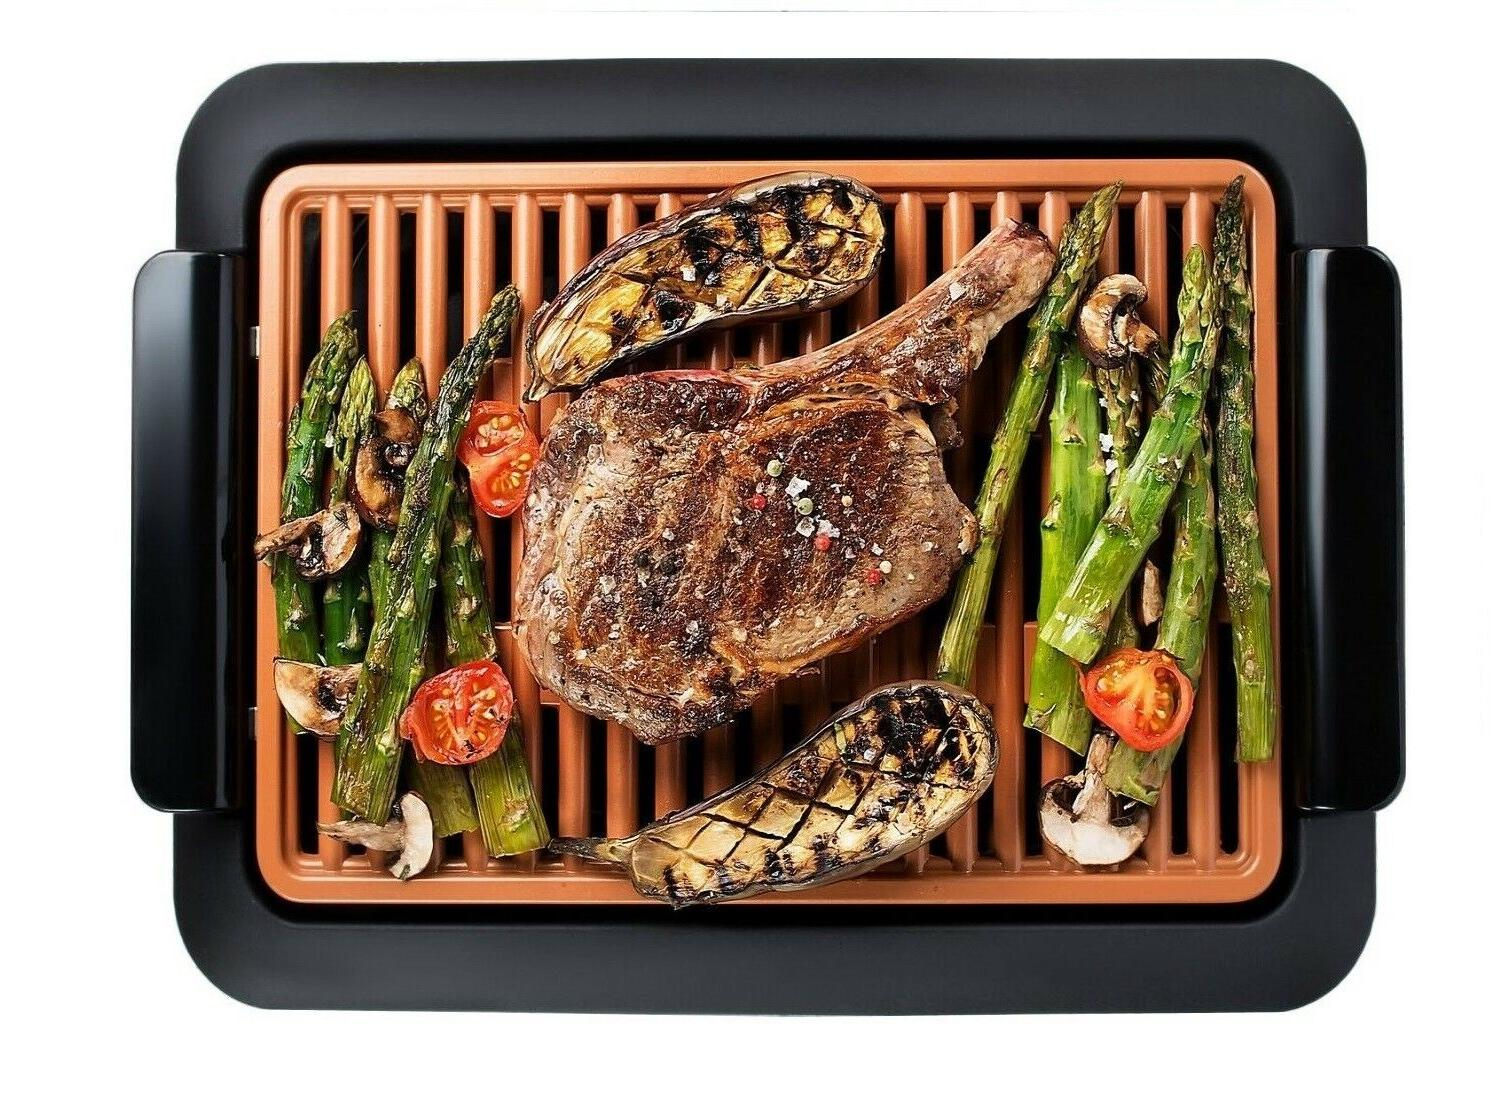 Gotham Steel Electric Grill As on Value! NEW